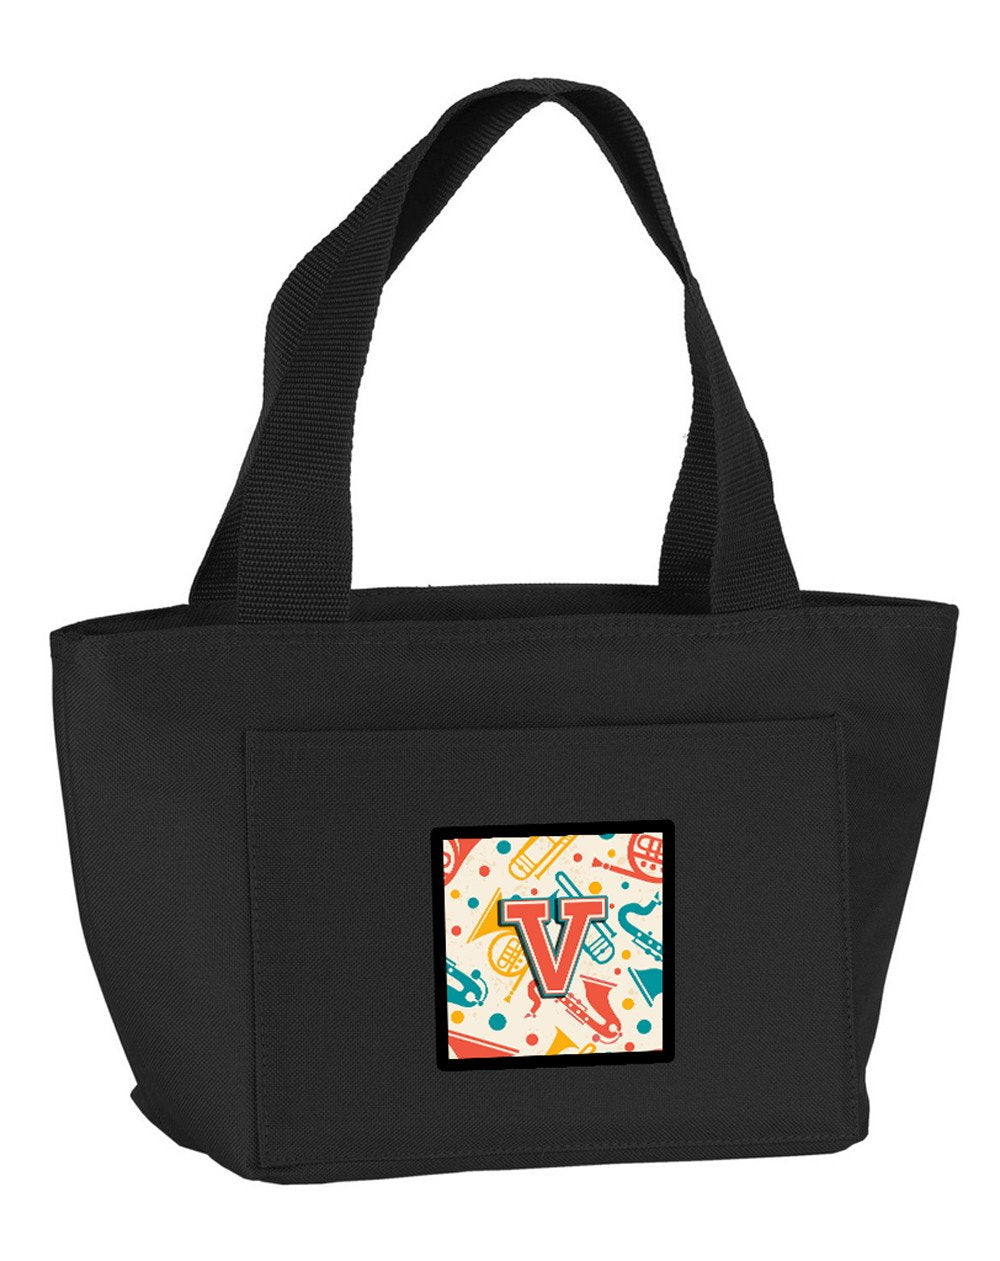 Letter V Retro Teal Orange Musical Instruments Initial Lunch Bag CJ2001-VBK-8808 by Caroline's Treasures